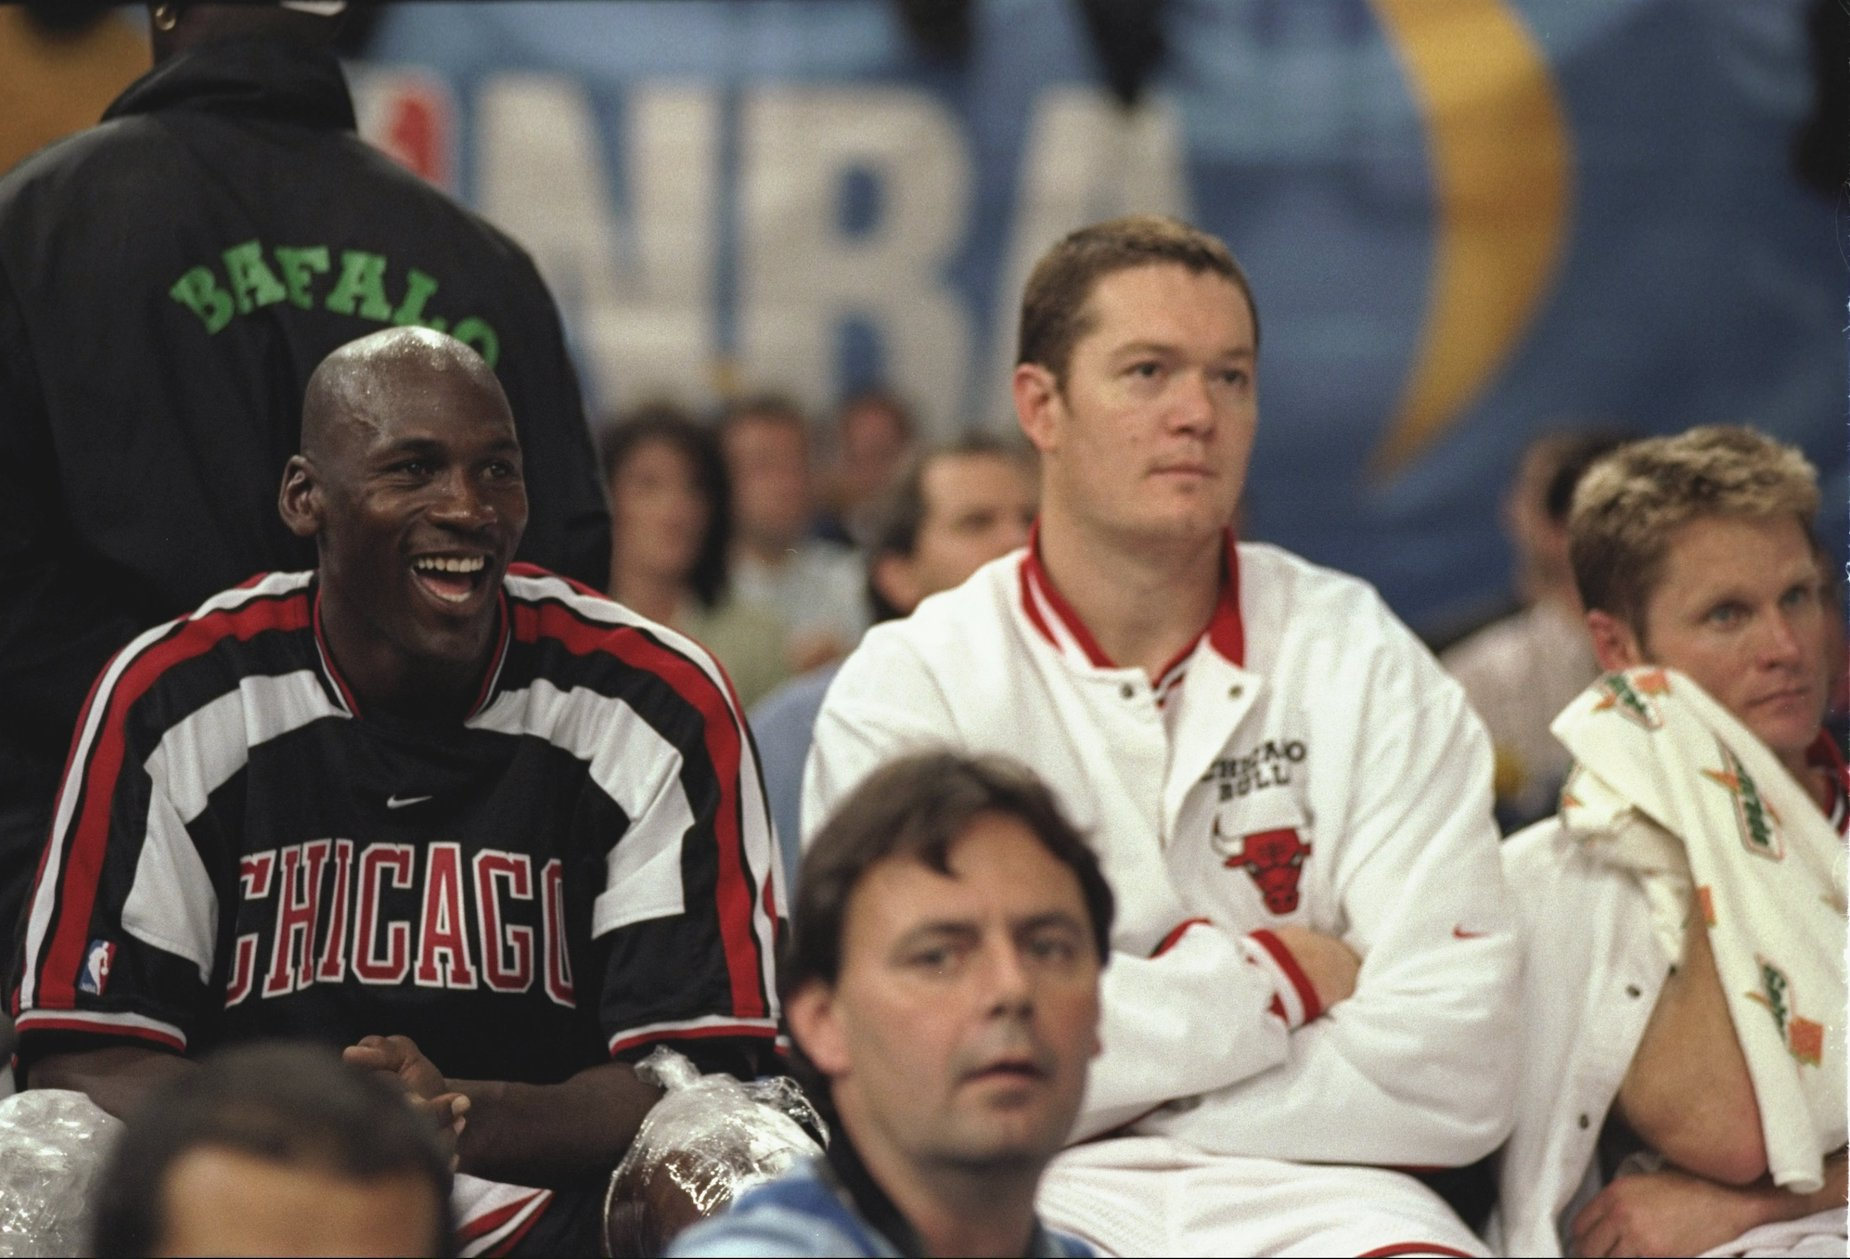 Michael Jordan (L) and Luc Longley (R) sit together on the bench as members of the Chicago Bulls.